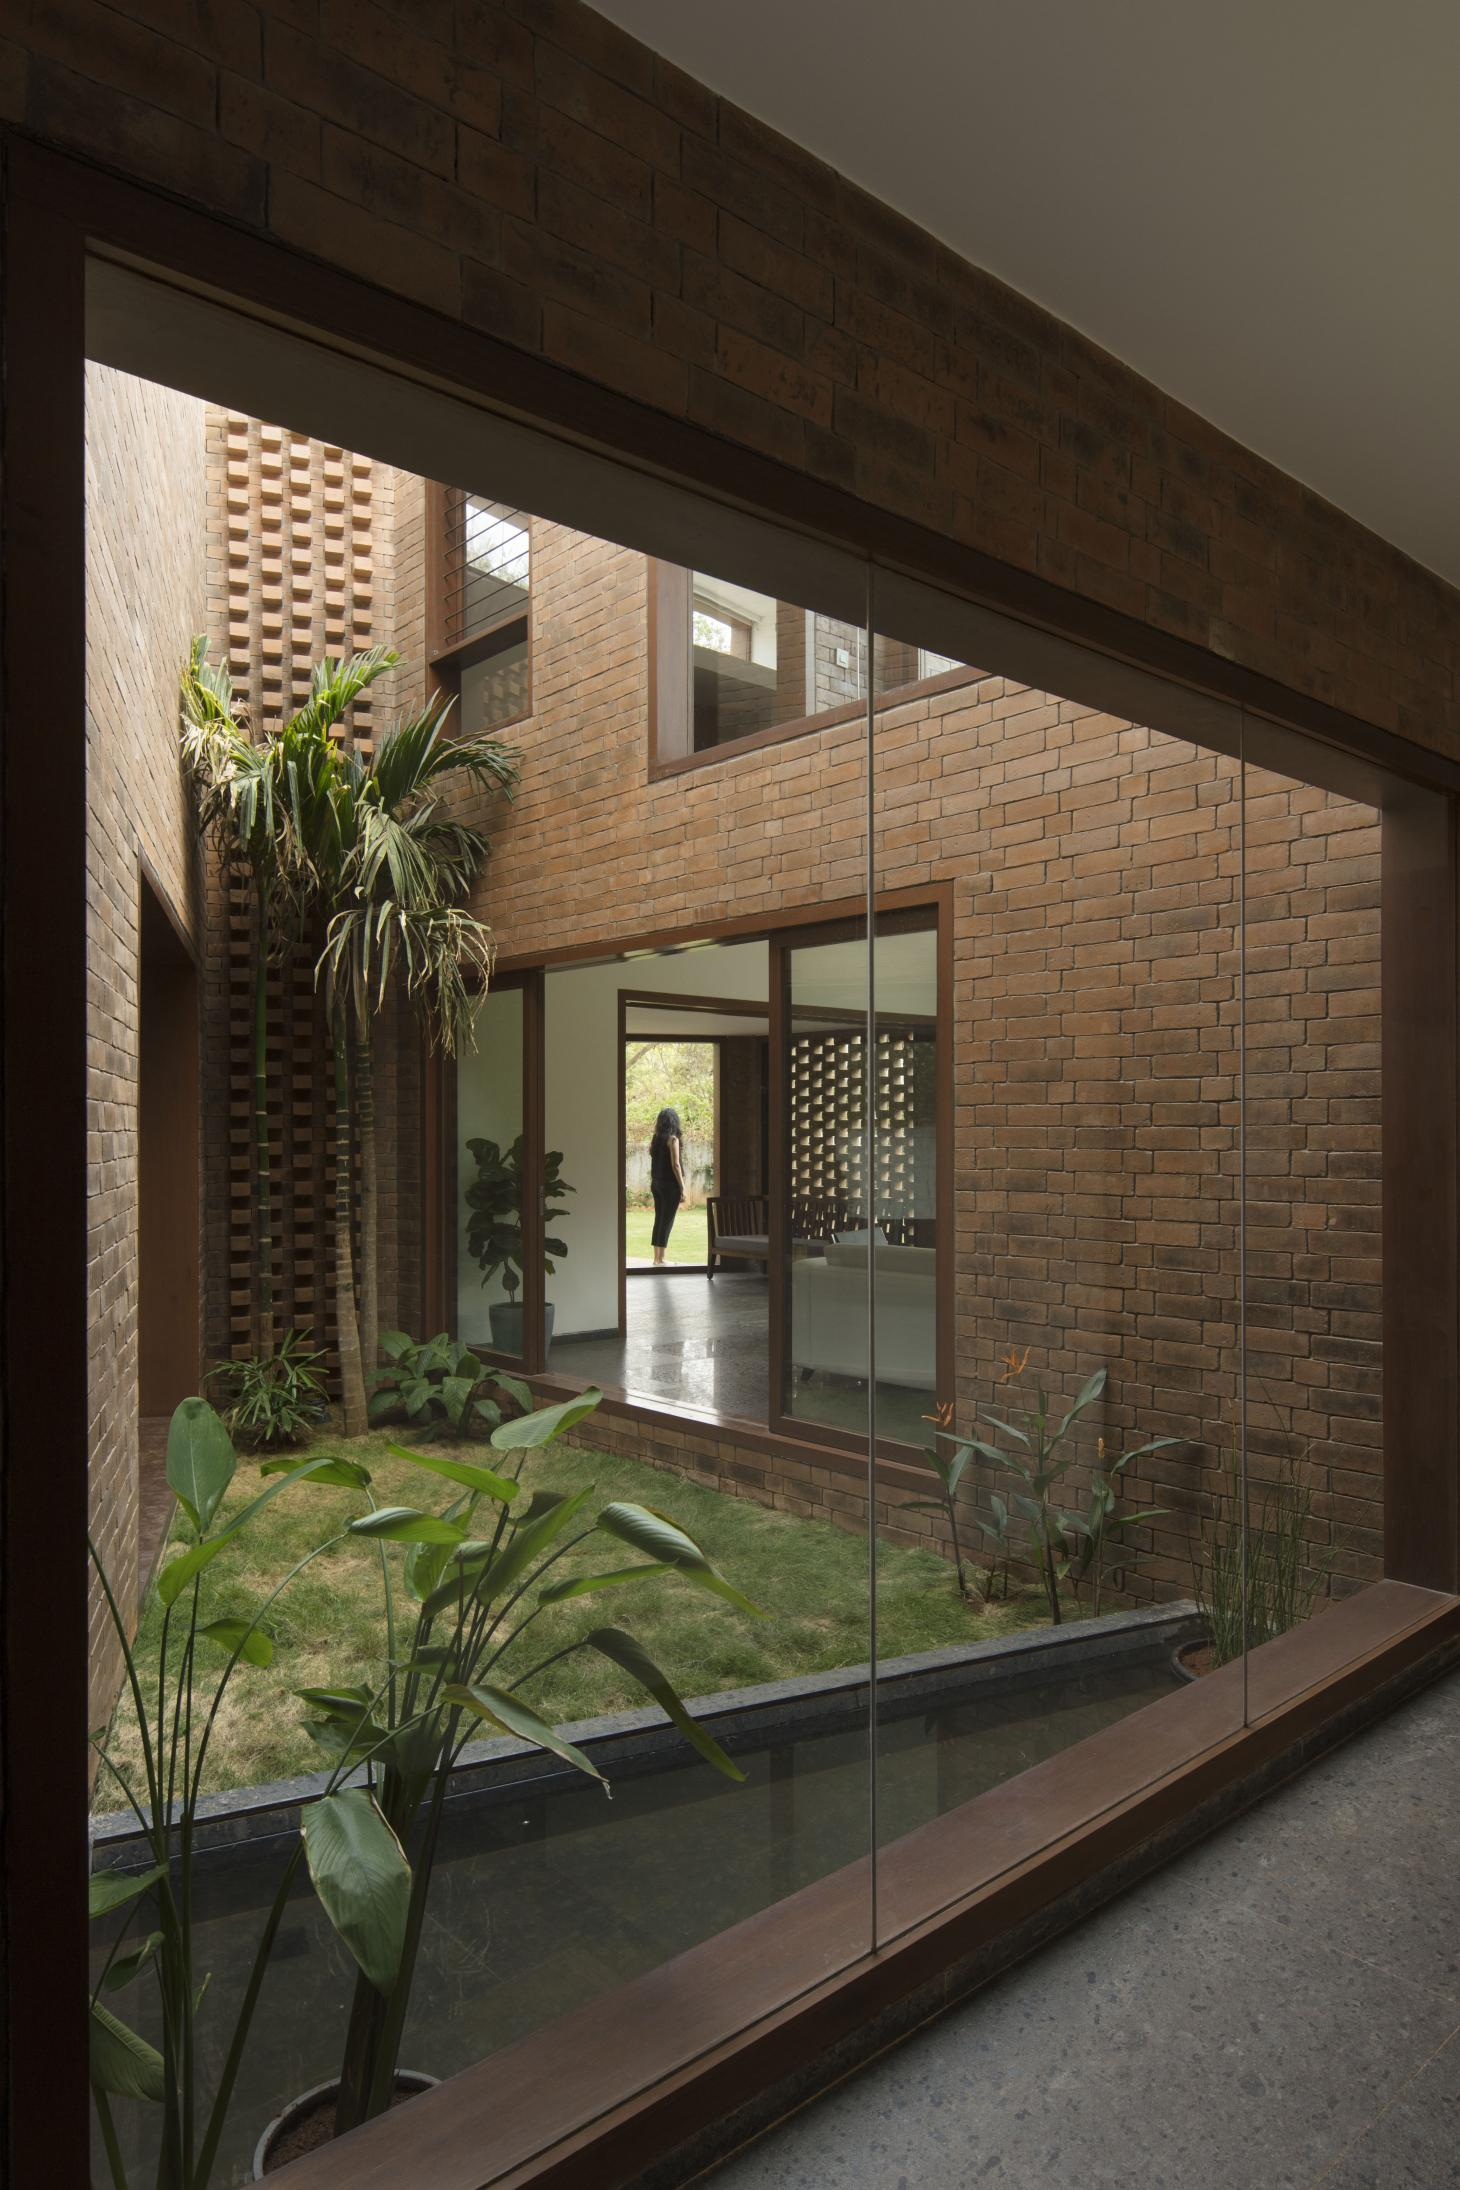 Brick House features green courtyards